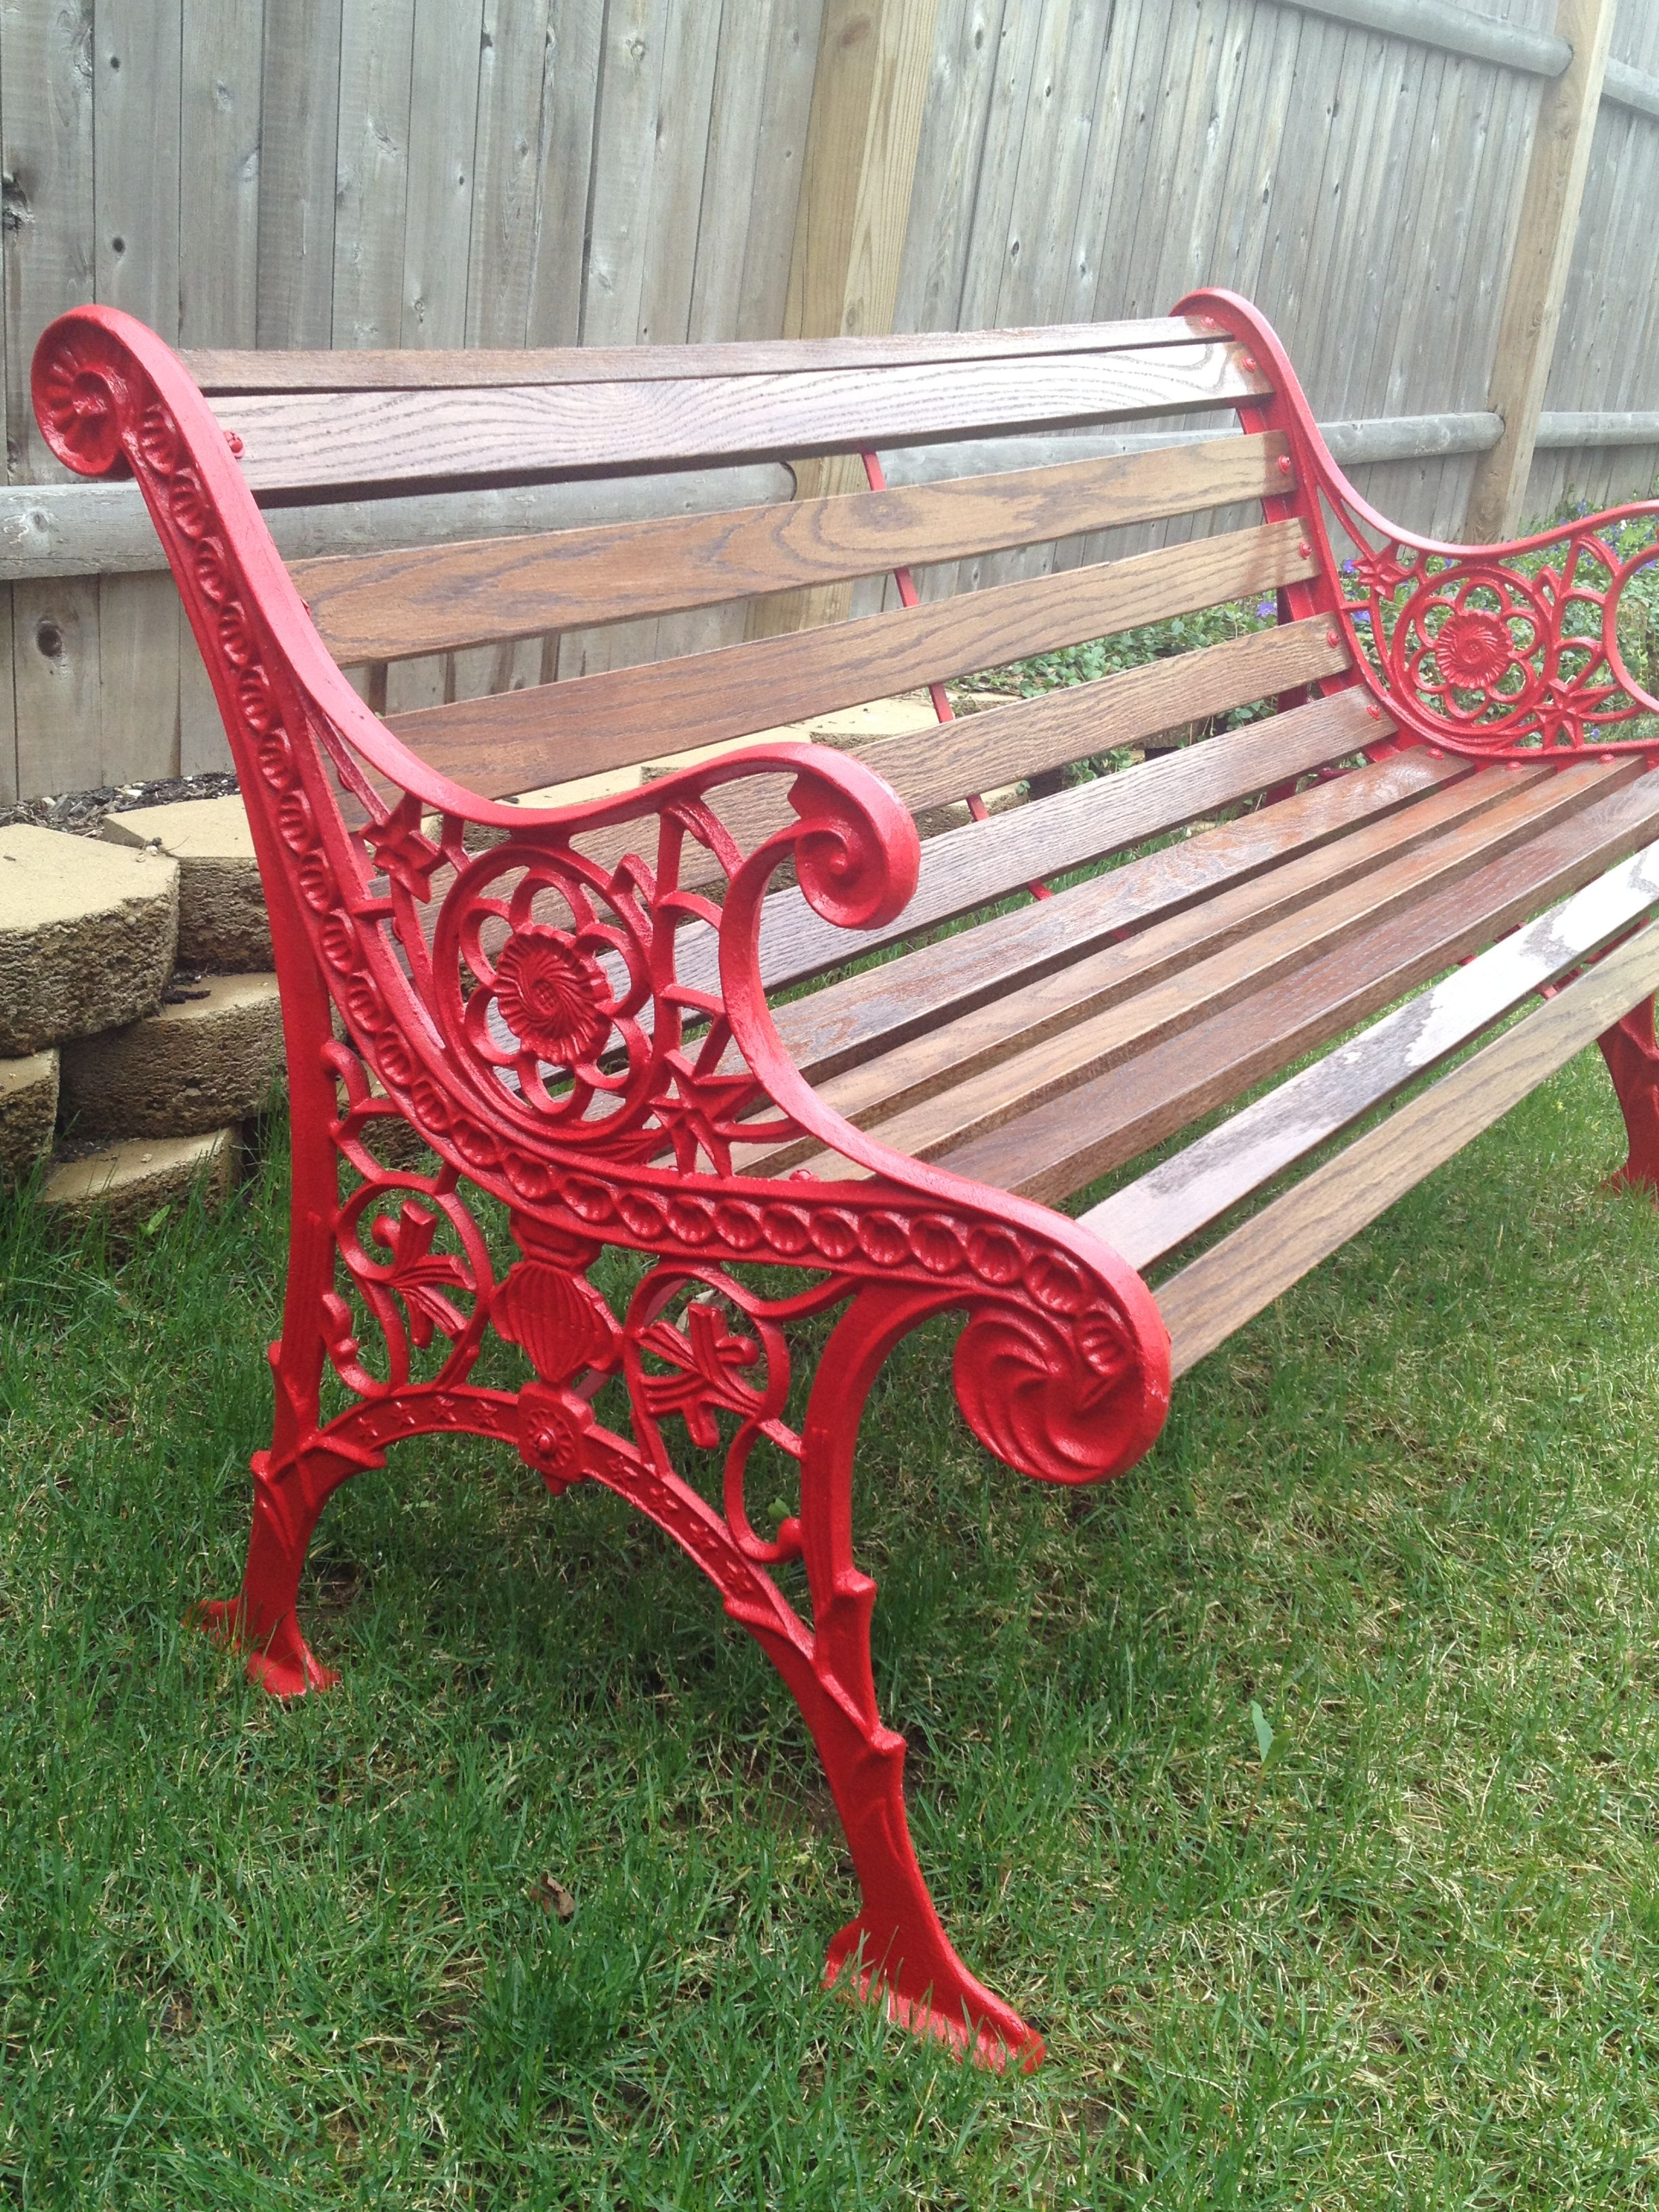 Vintage Cast Iron Bench Red Garden Furniture Outdoor Patio